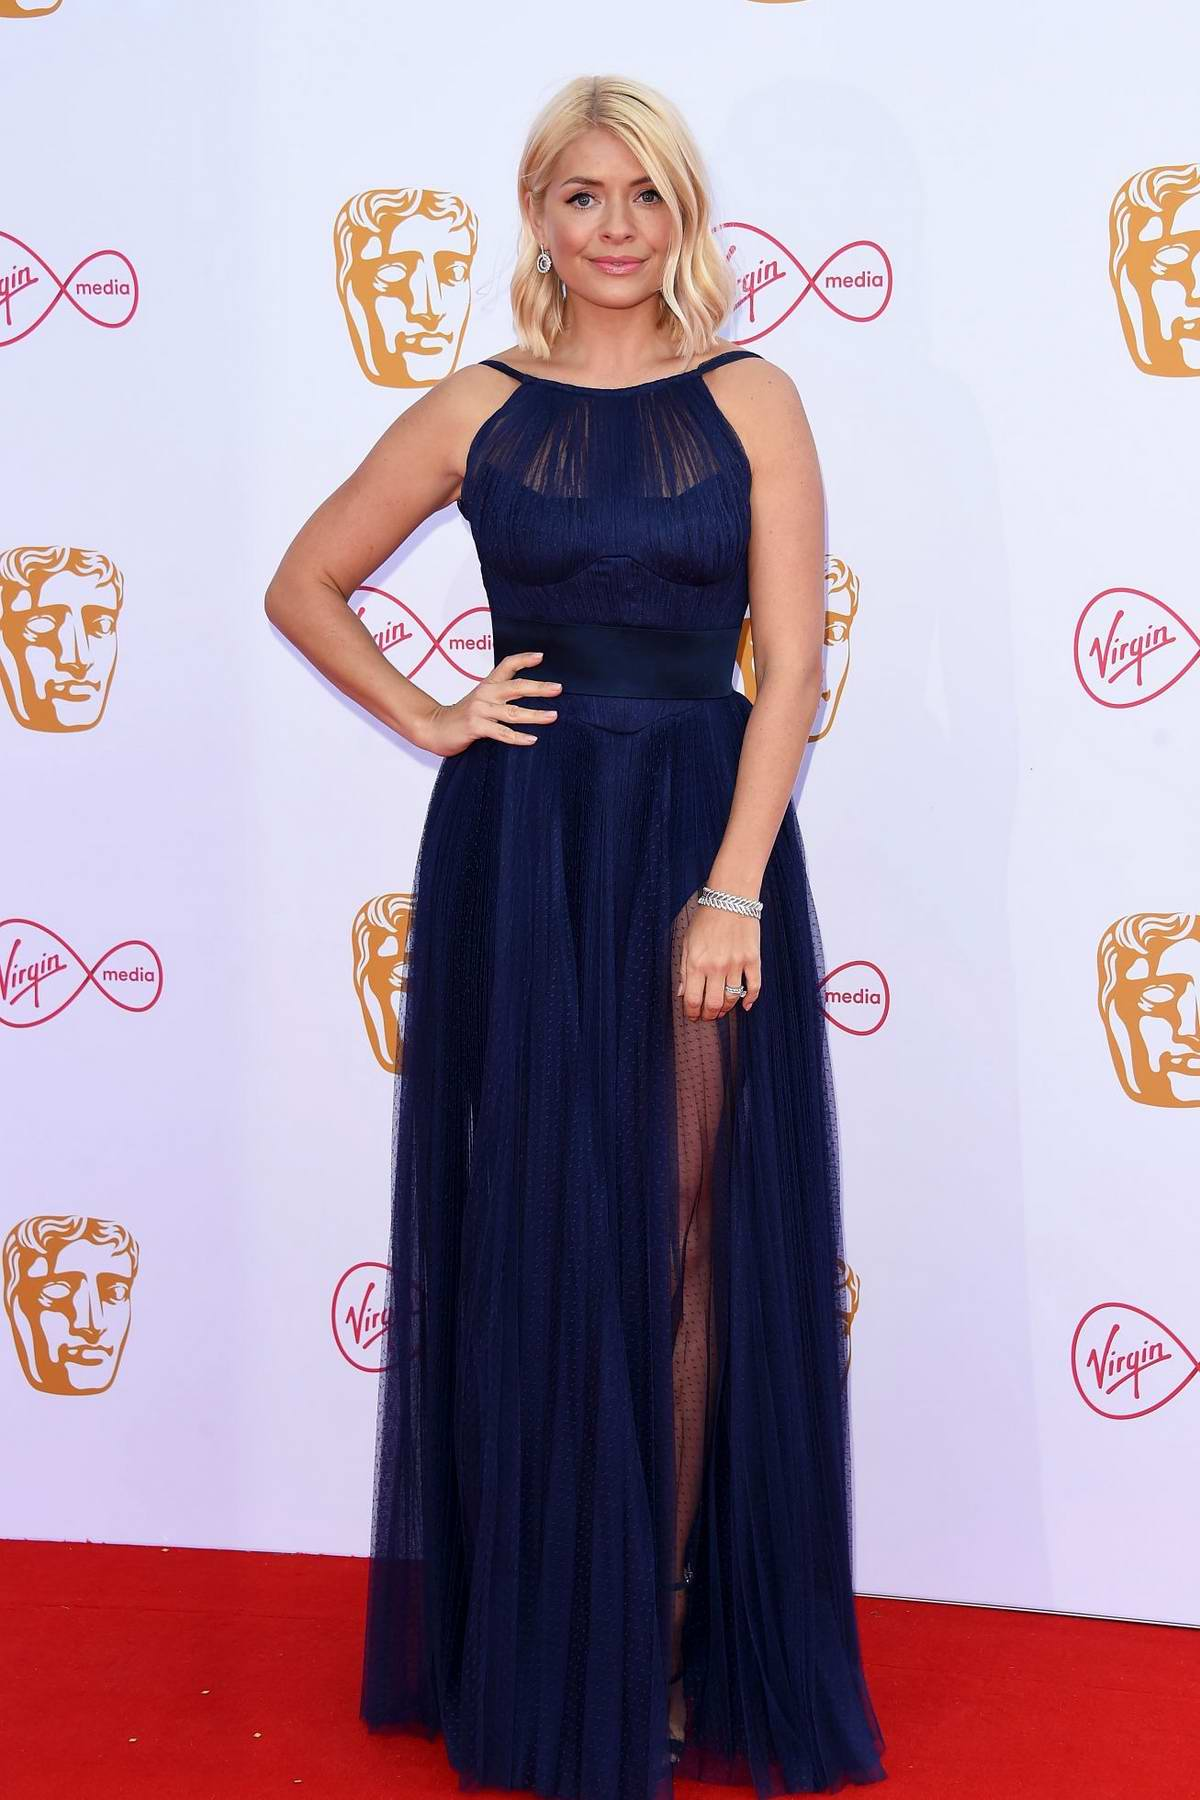 Holly Willoughby attends the 2019 British Academy Television Awards at Royal Festival Hall in London, UK